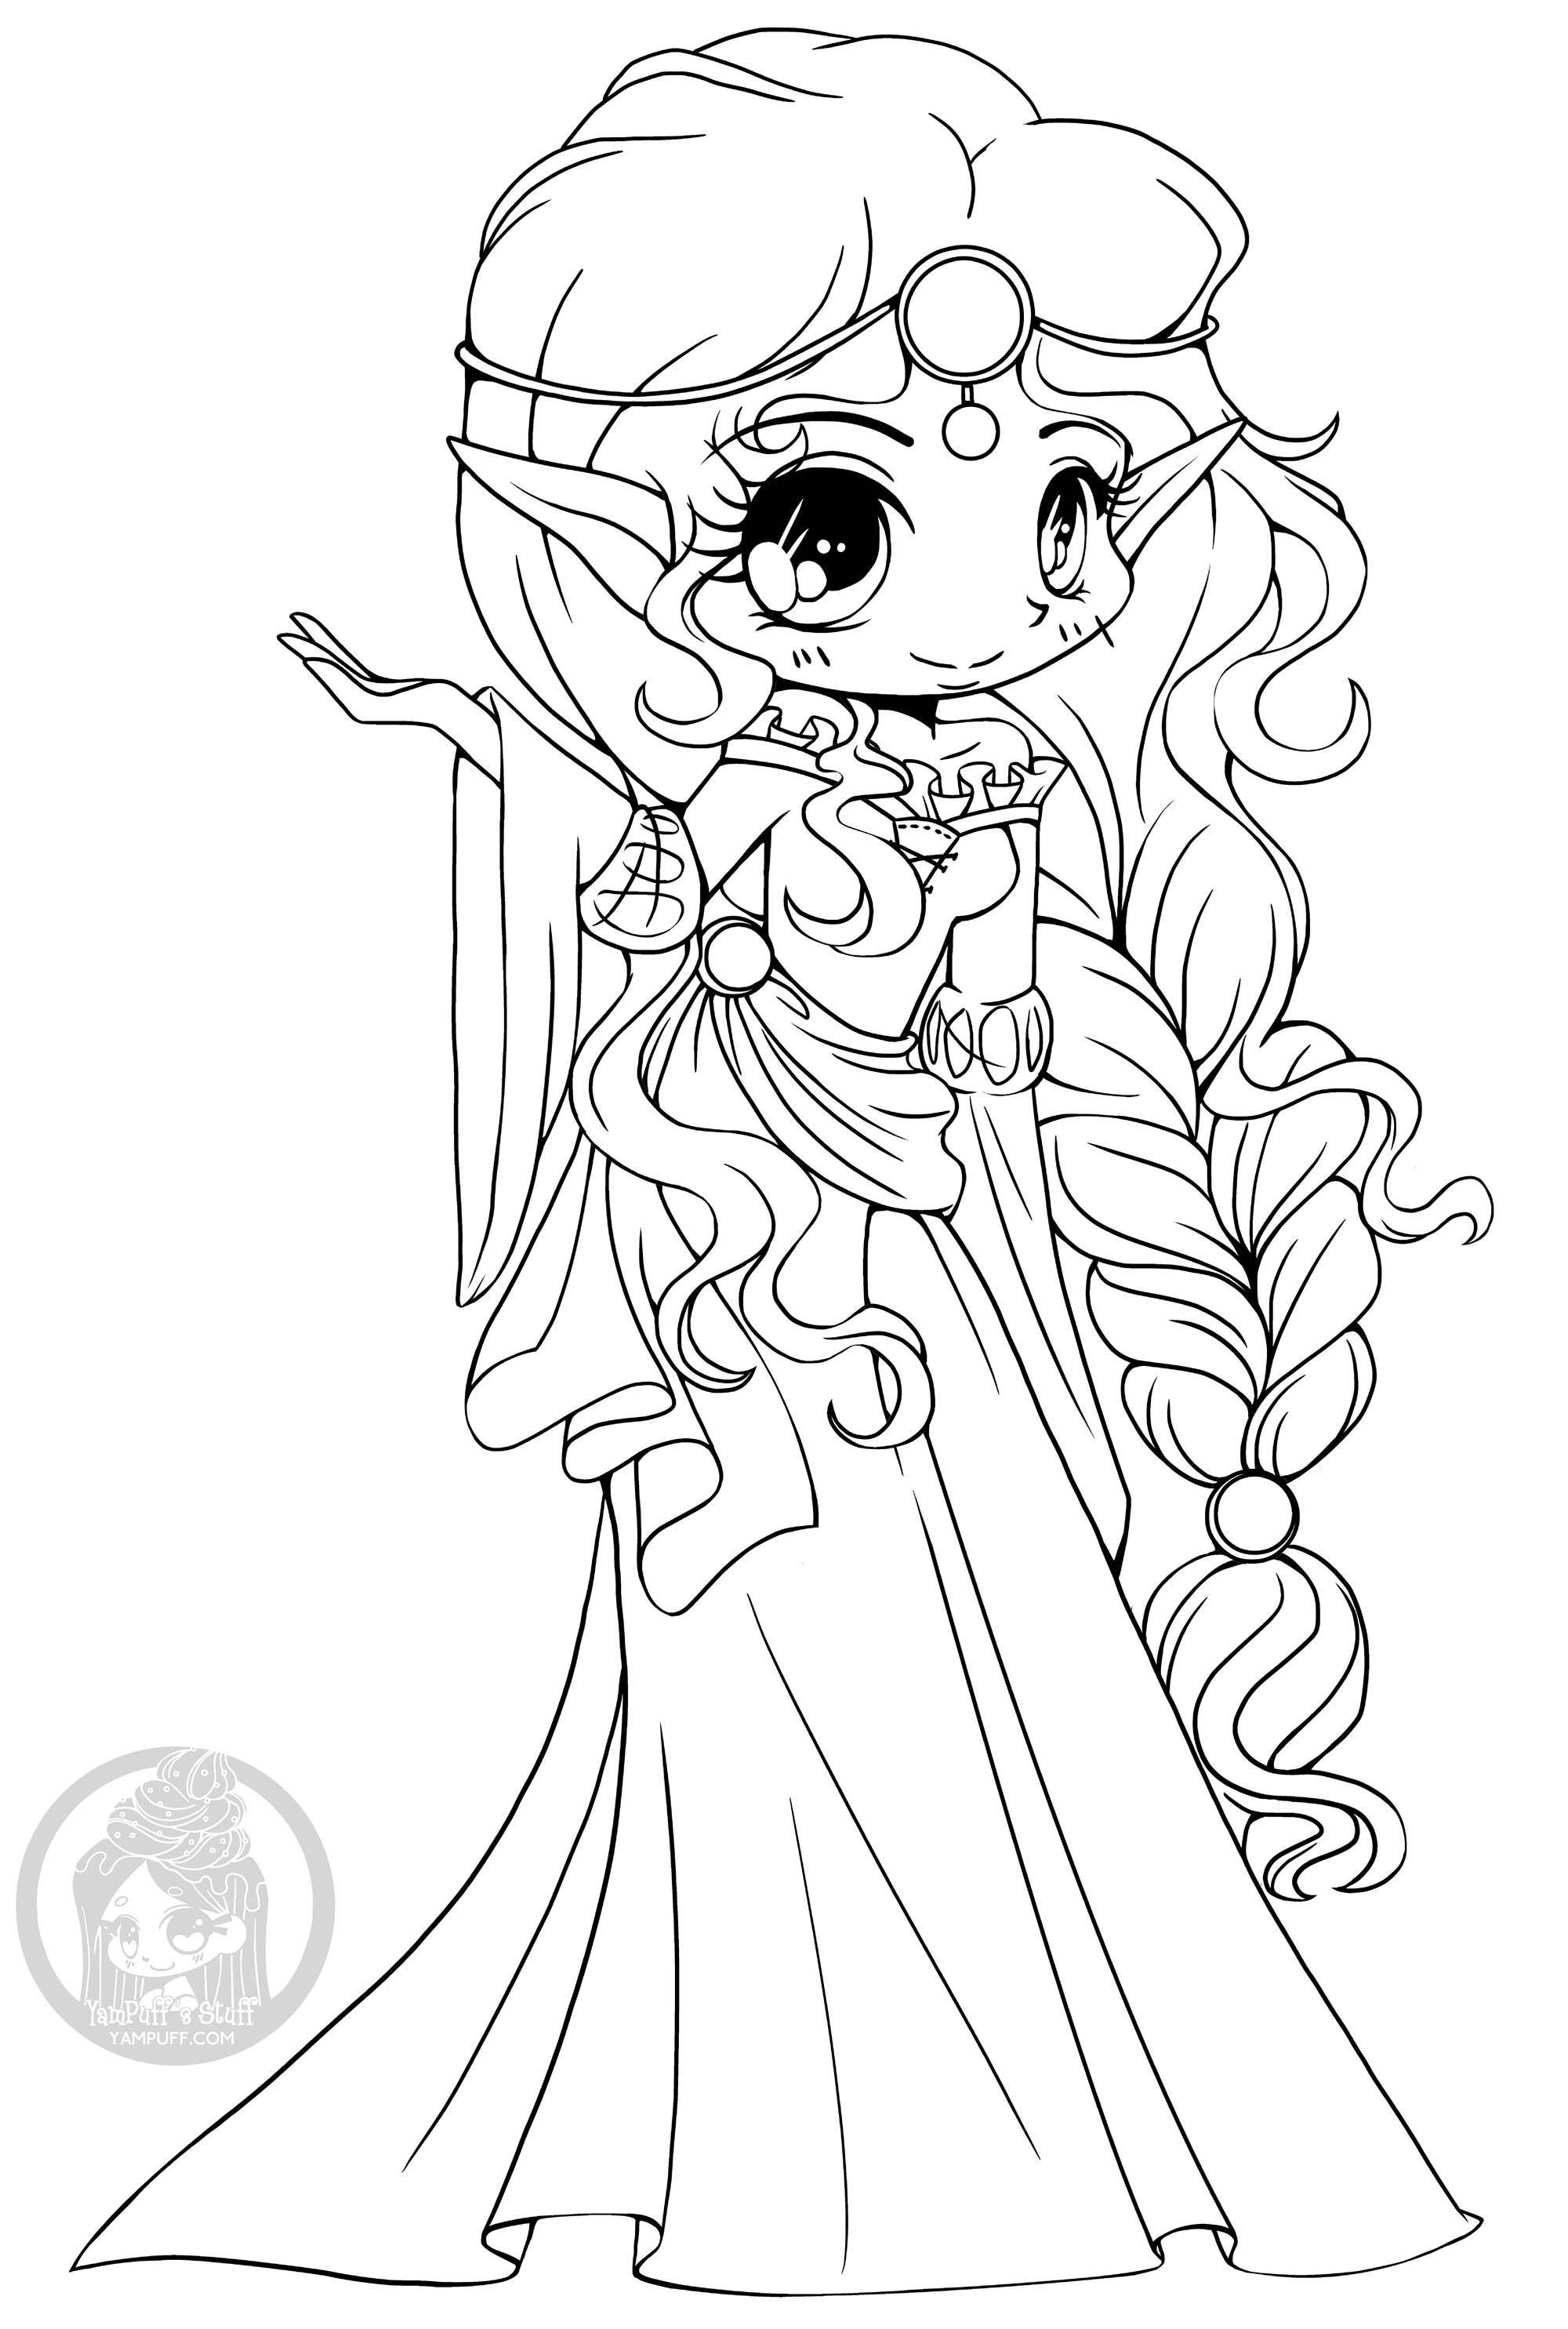 This elf princess will shows you her kingdom if you color her !